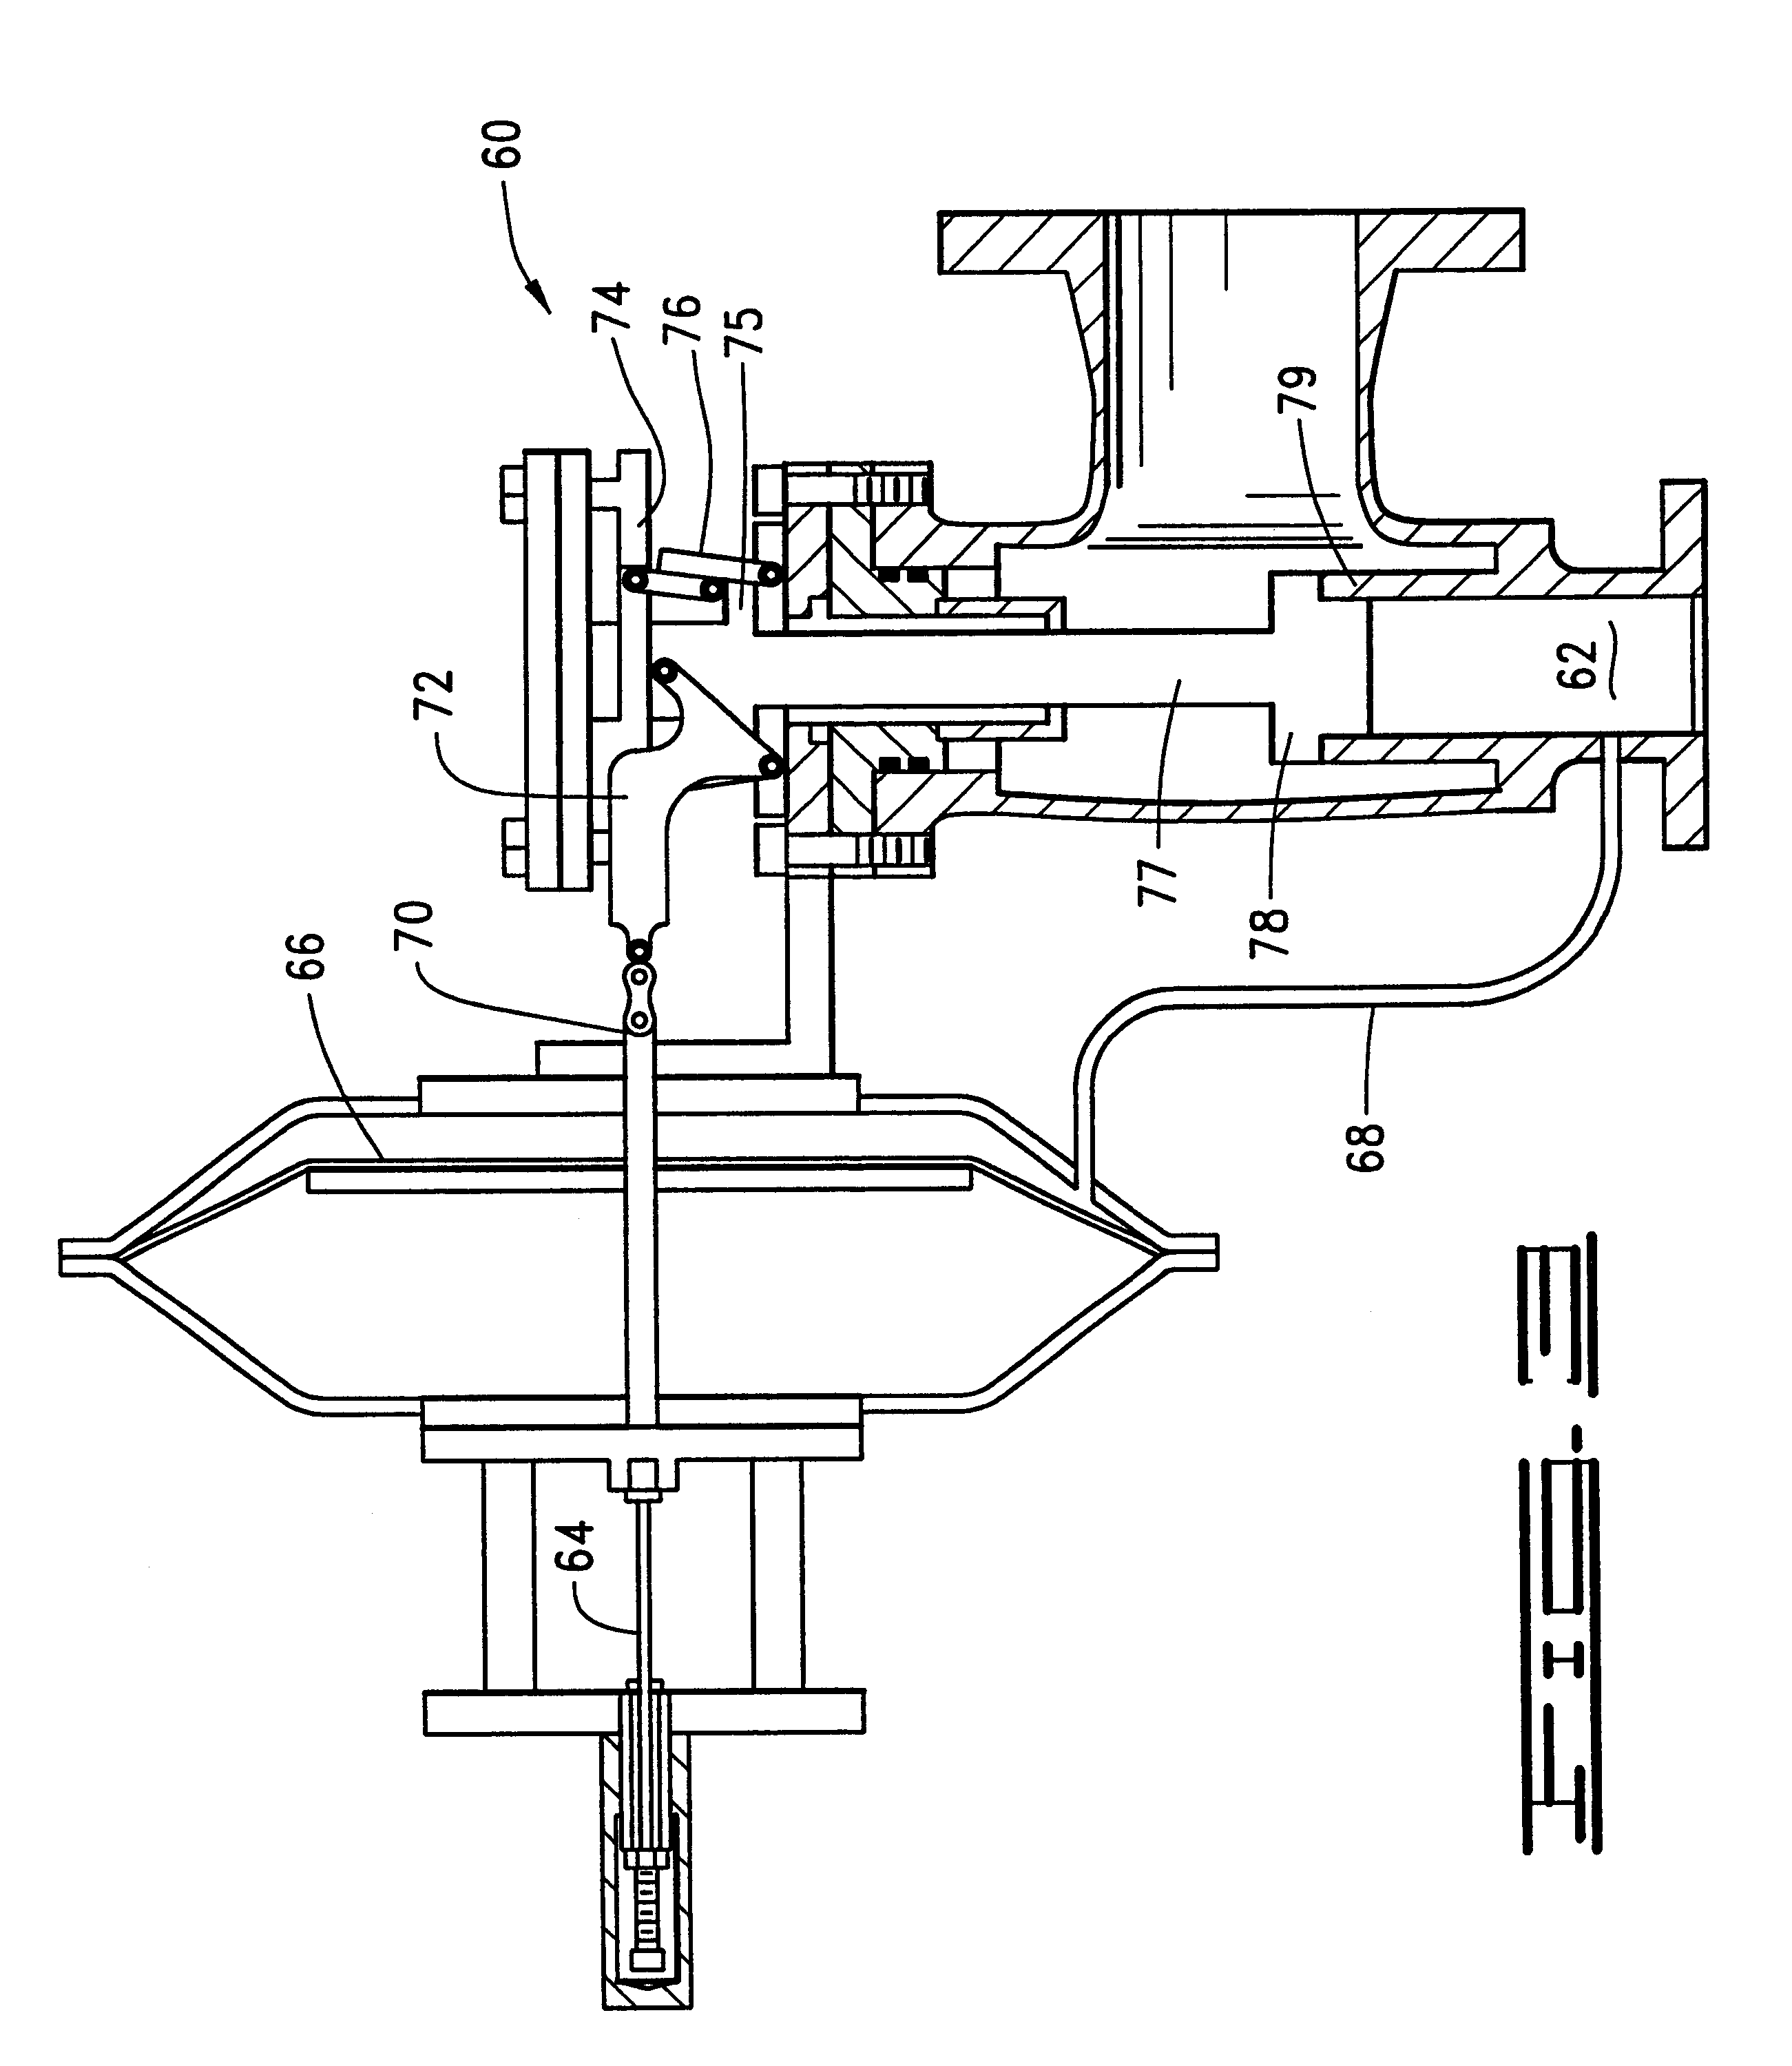 patente us6325088 - buckling pin actuated  pilot operated pressure relief valve